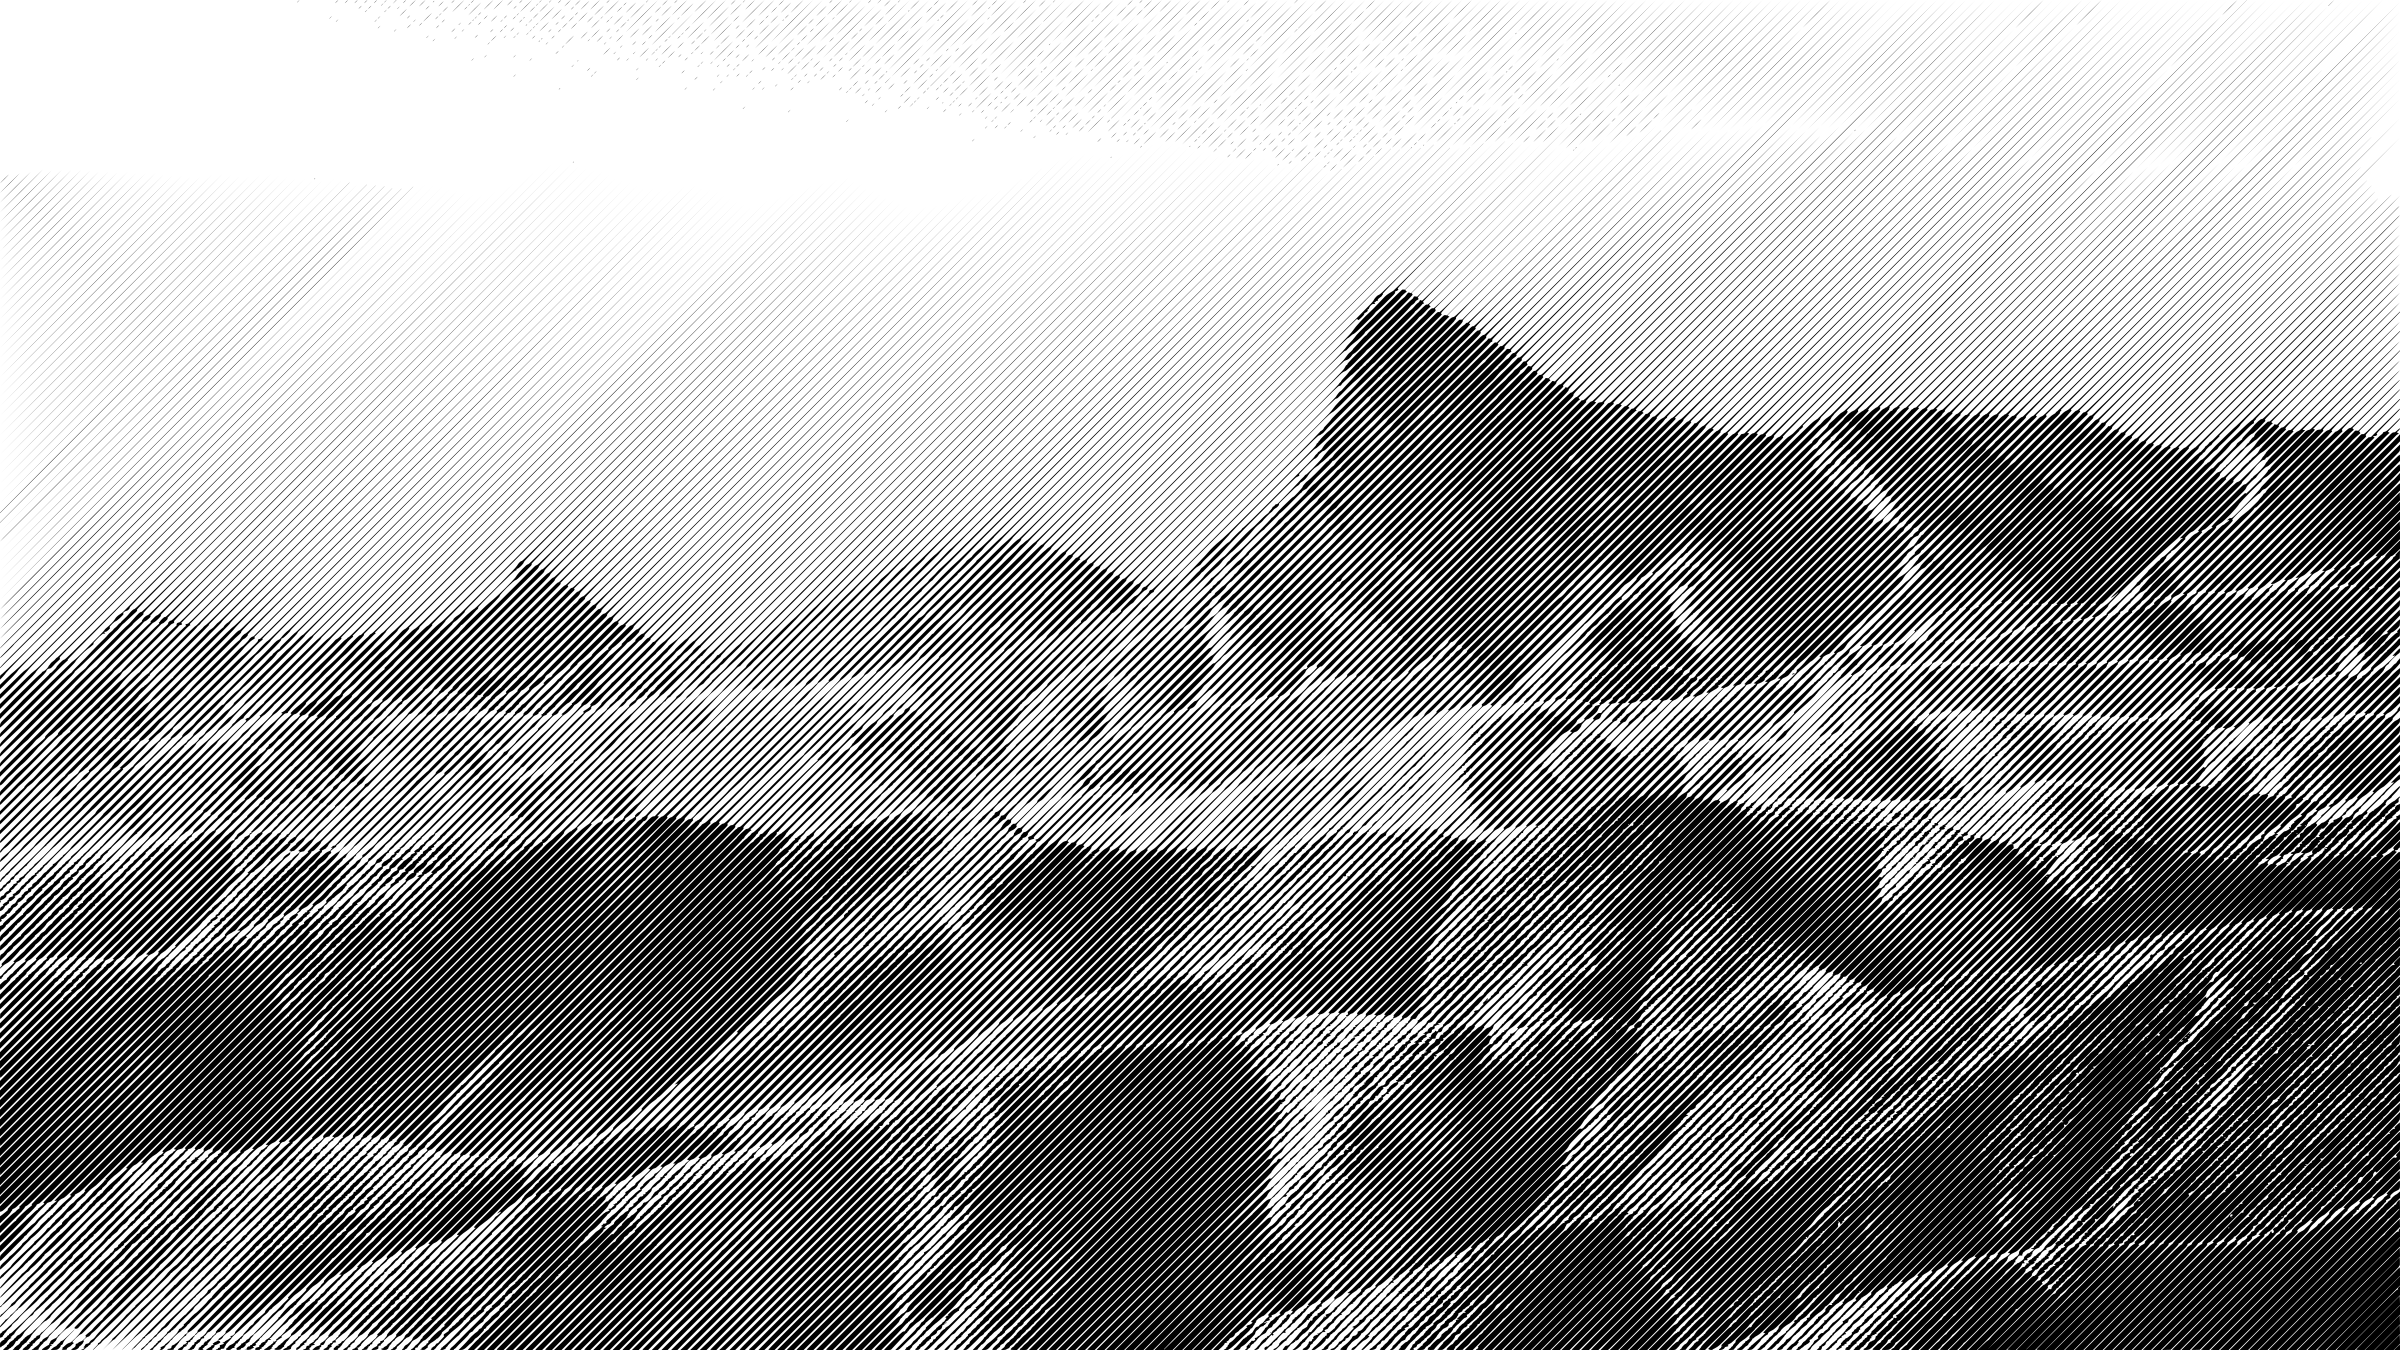 halftone mountains 2 by Lazur URH